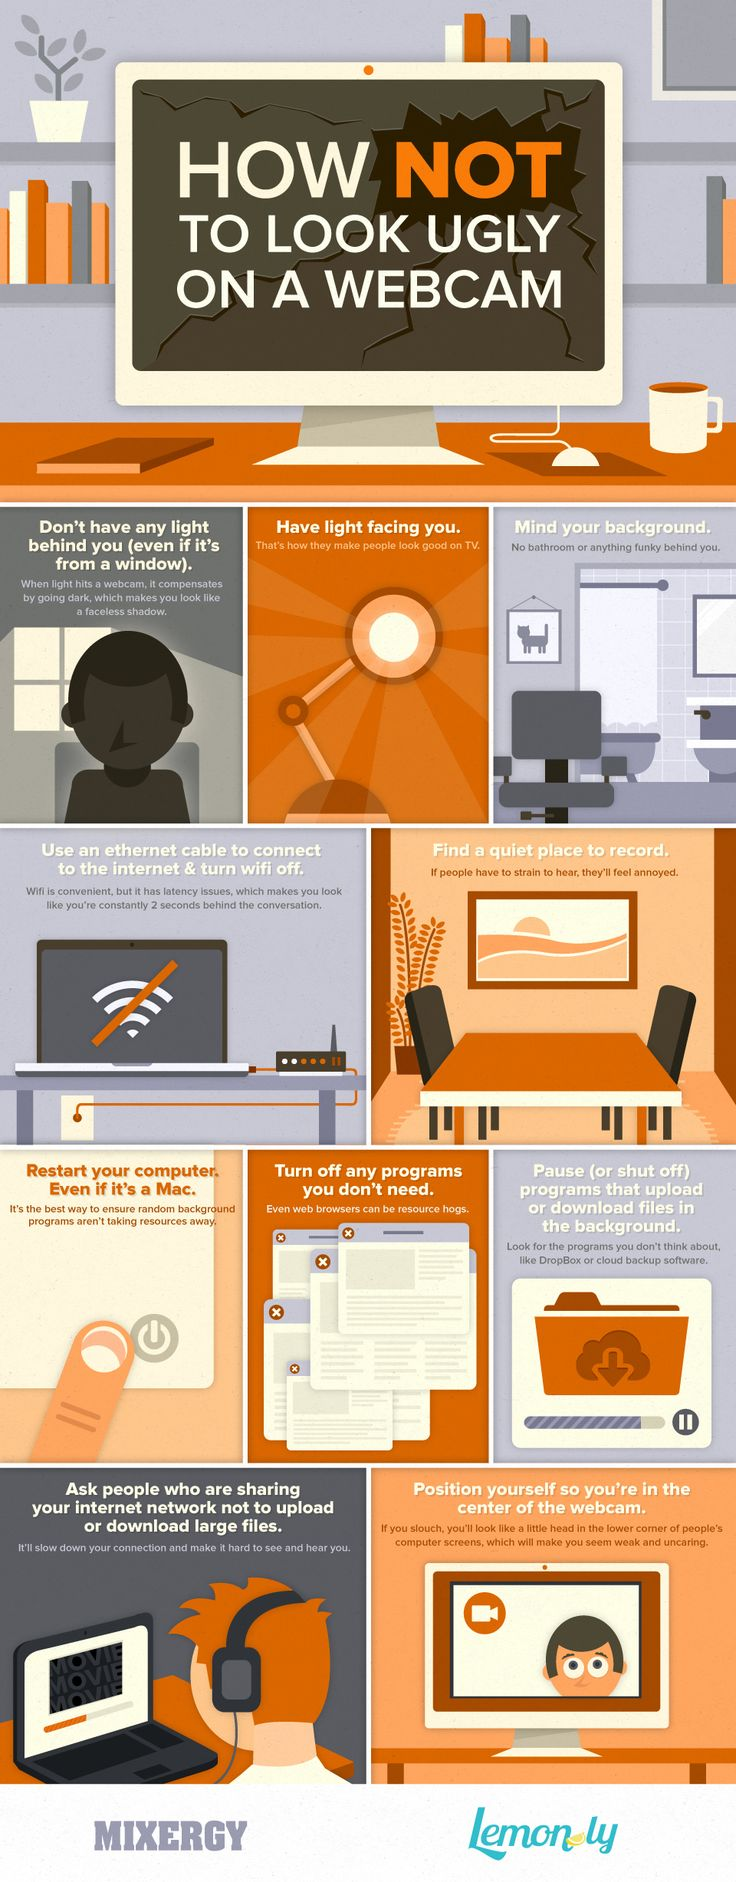 Tips for Video Interview: How Not to look Ugly on a Webcam [INFOGRAPHIC]